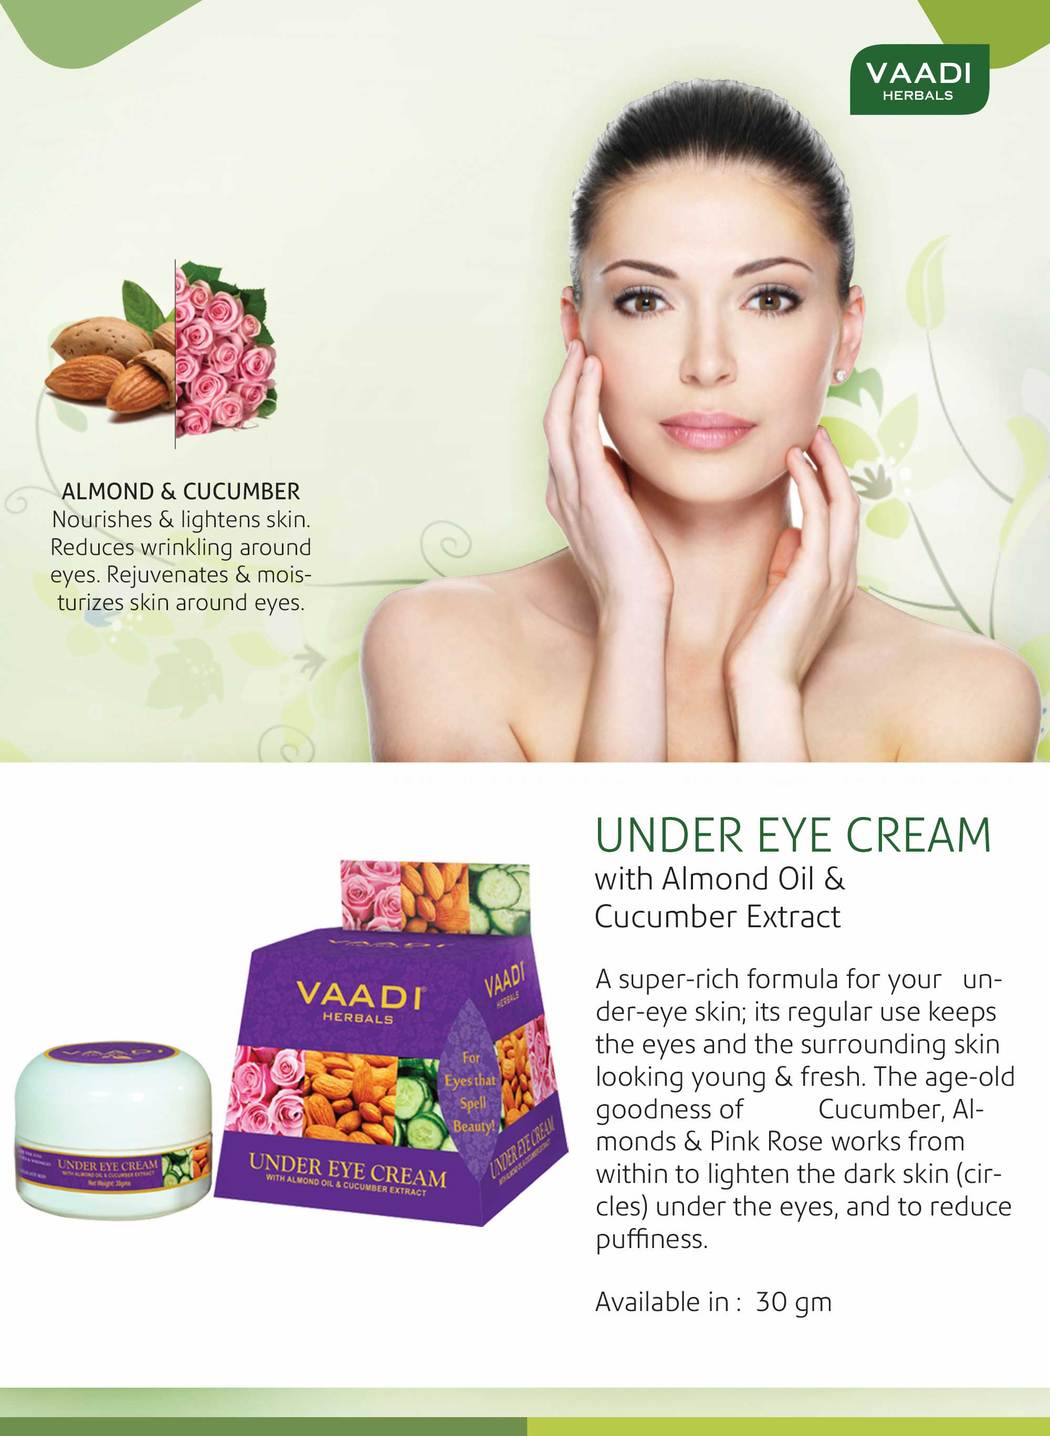 Organic Under Eye Cream with Almond Oil & Cucumber Extract - Reduces Puffiness - Keeps Skin Youthful (3 x 30 gms /1.1 oz)